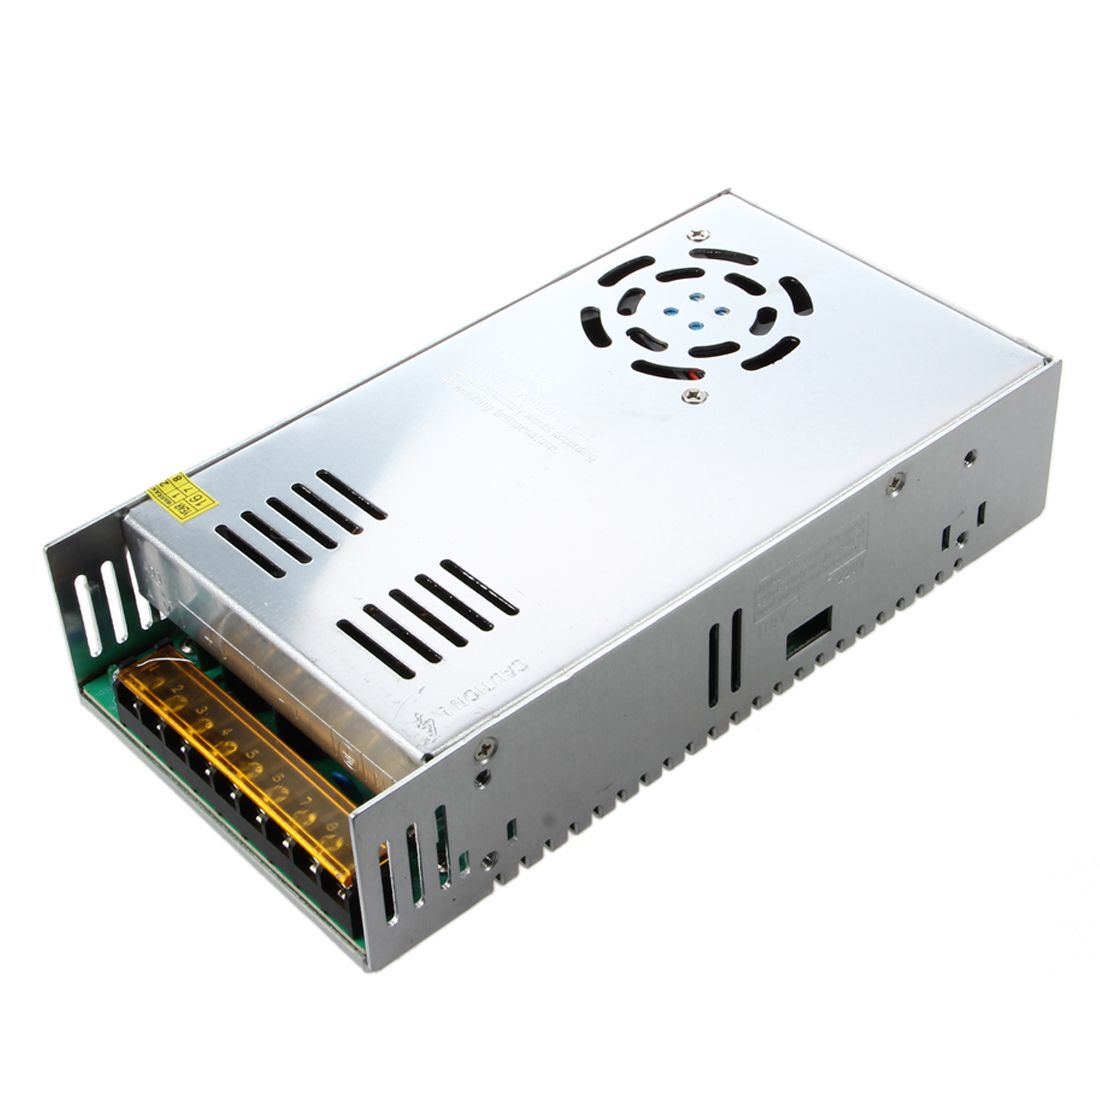 Check Price 400w Switching Switch Power Supply Driver For Led Strip 12v Ac To Dc Converter Module Accessories Drivers Light Lighting Supplies